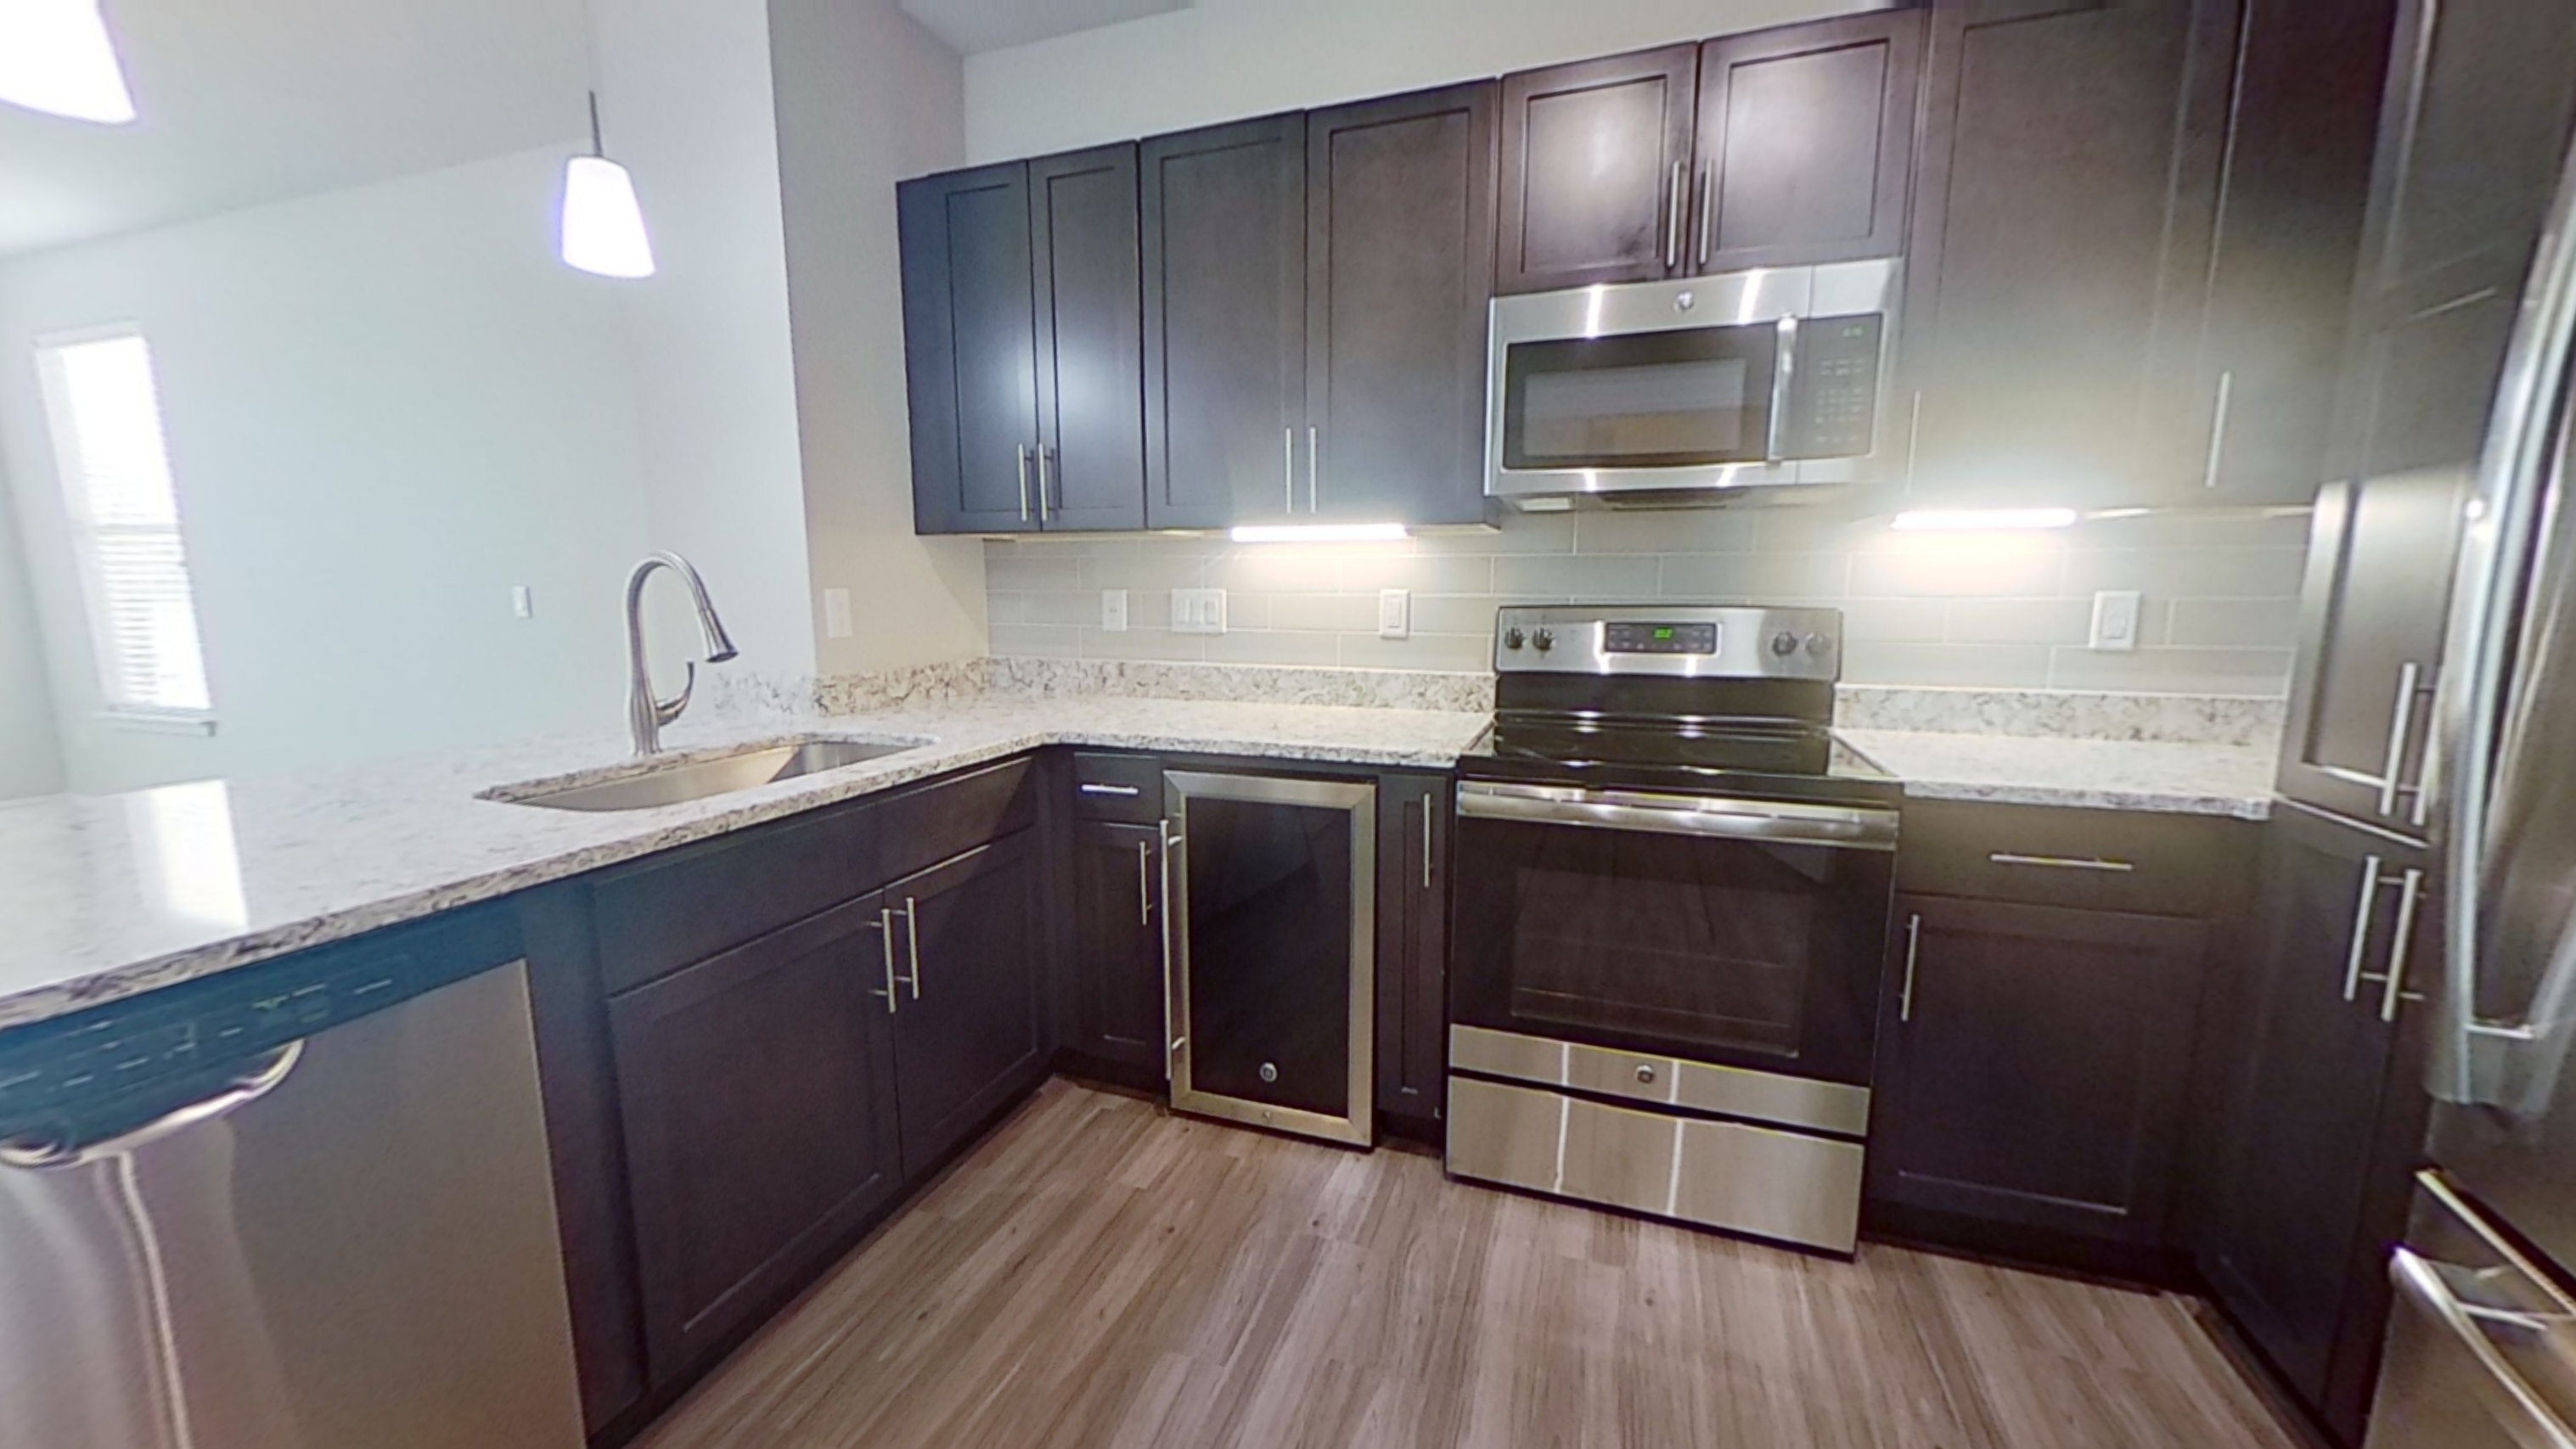 A2 Unit Kitchen at the Vue at Creve Coeur Apartments in Creve Coeur, MO